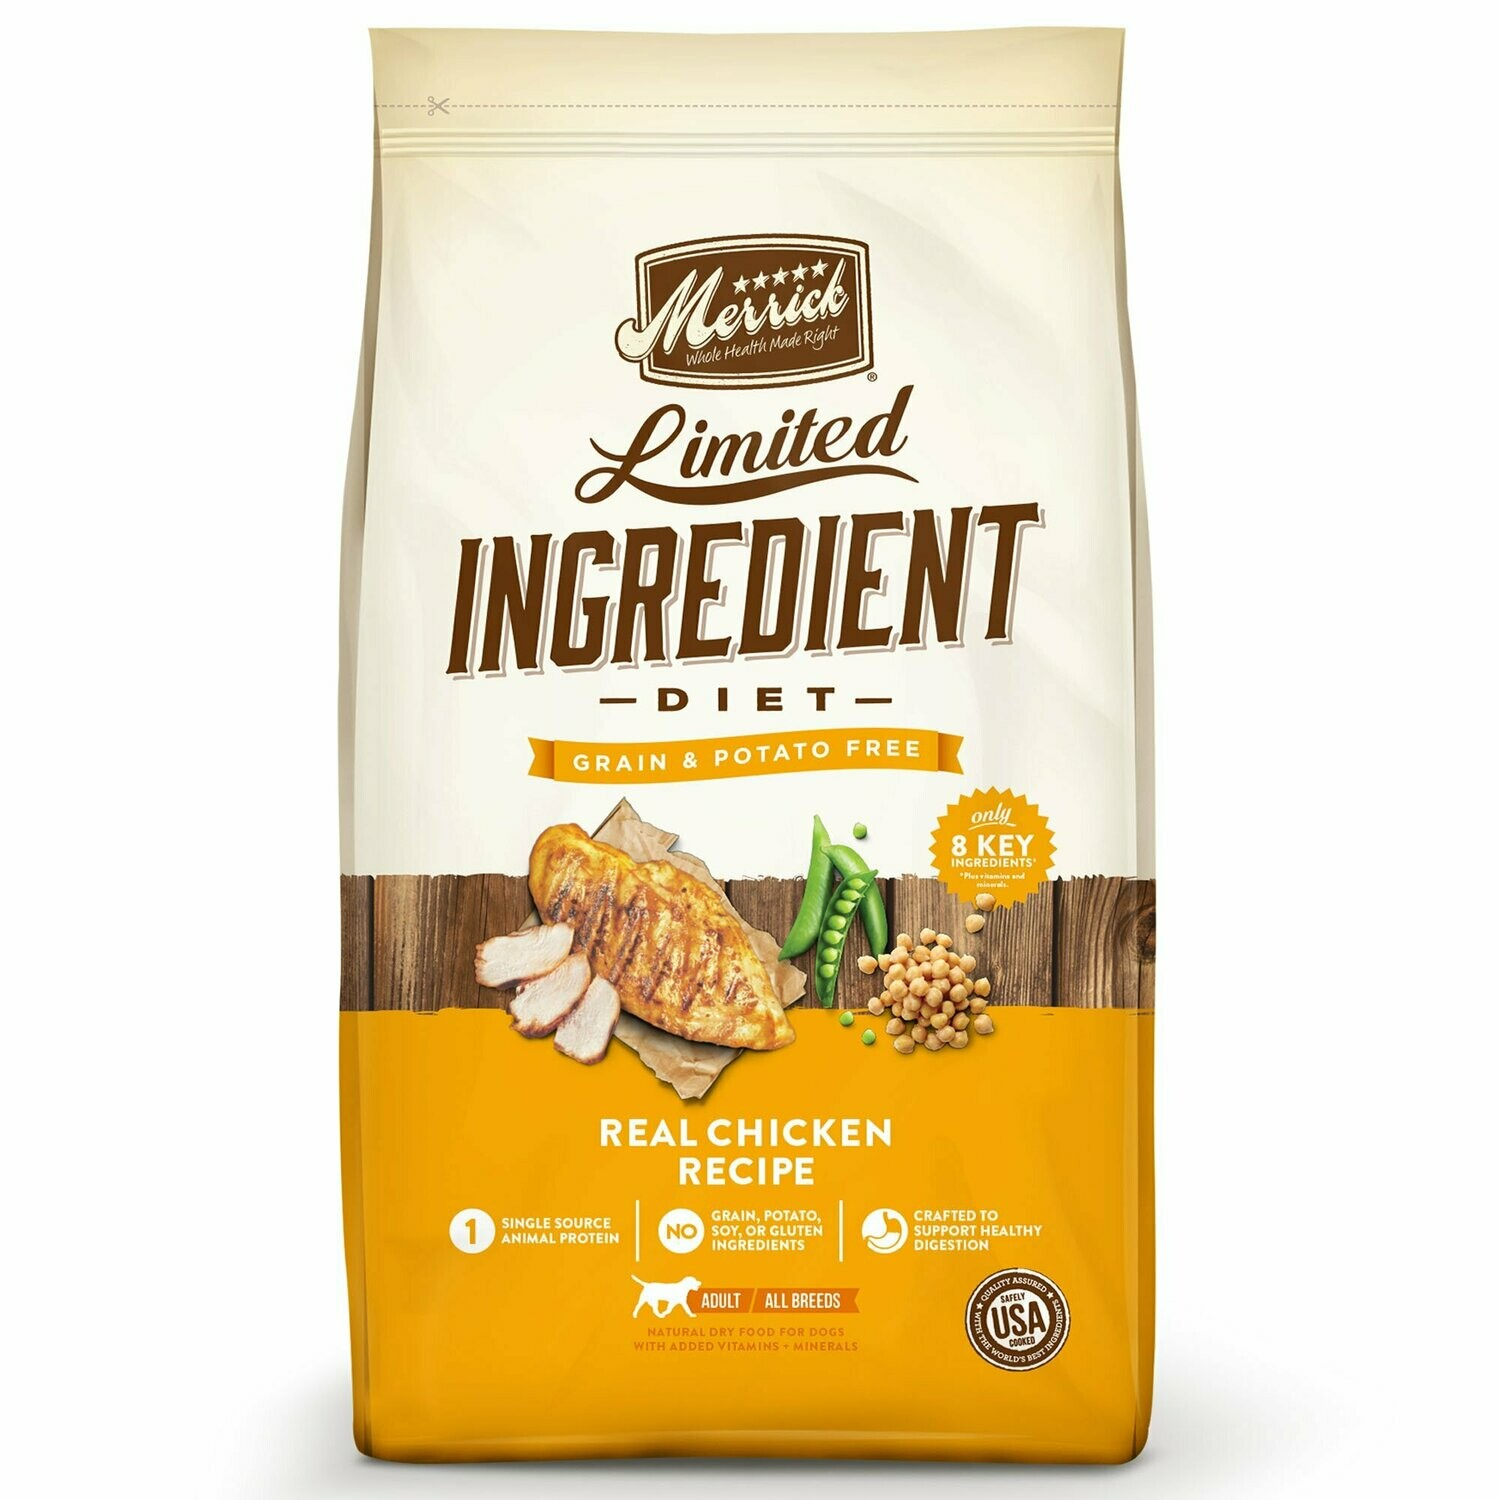 Merrick Limited Ingredient Diet Grain-Free Real Chicken Recipe Dry Dog Food 4 lbs (11/19) (A.C4)